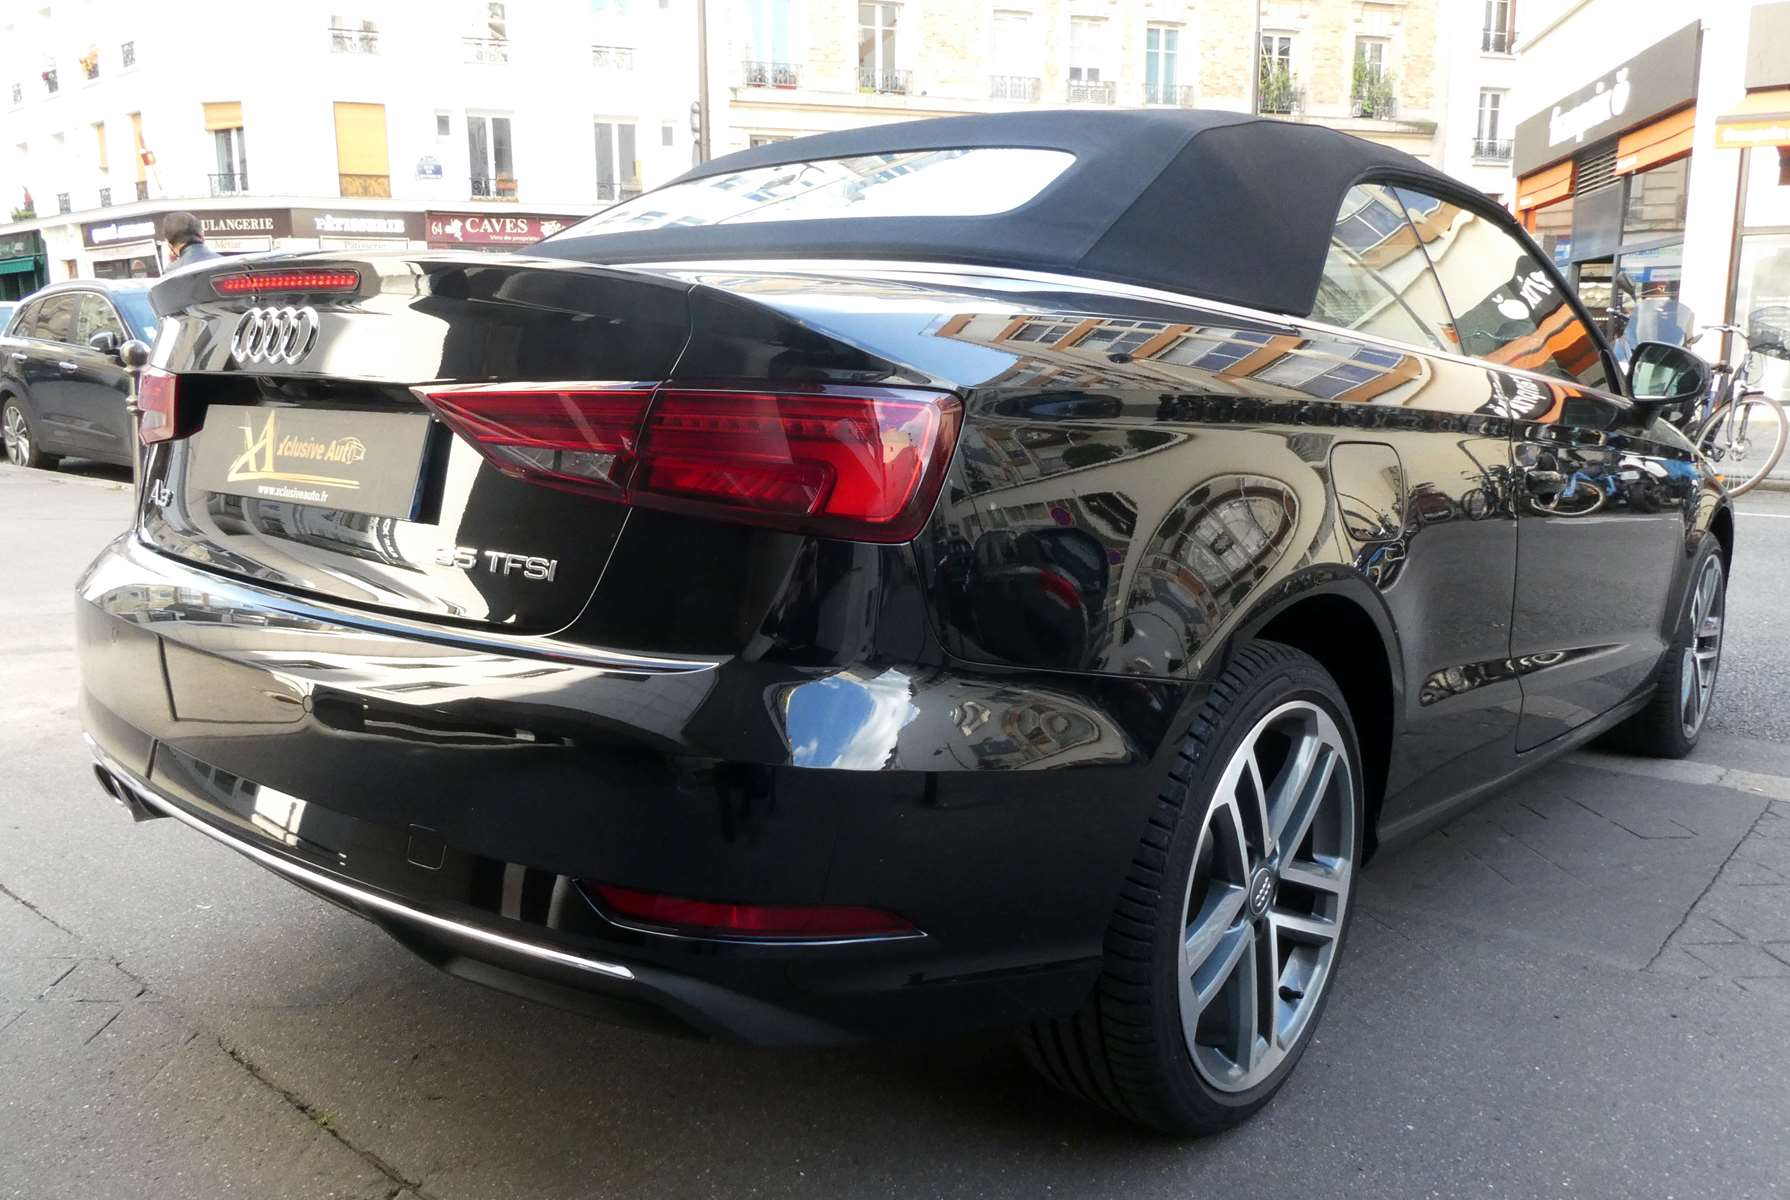 Audi A3 (2) cabriolet 35 TFSI 150 Design luxe S tronic 7 2